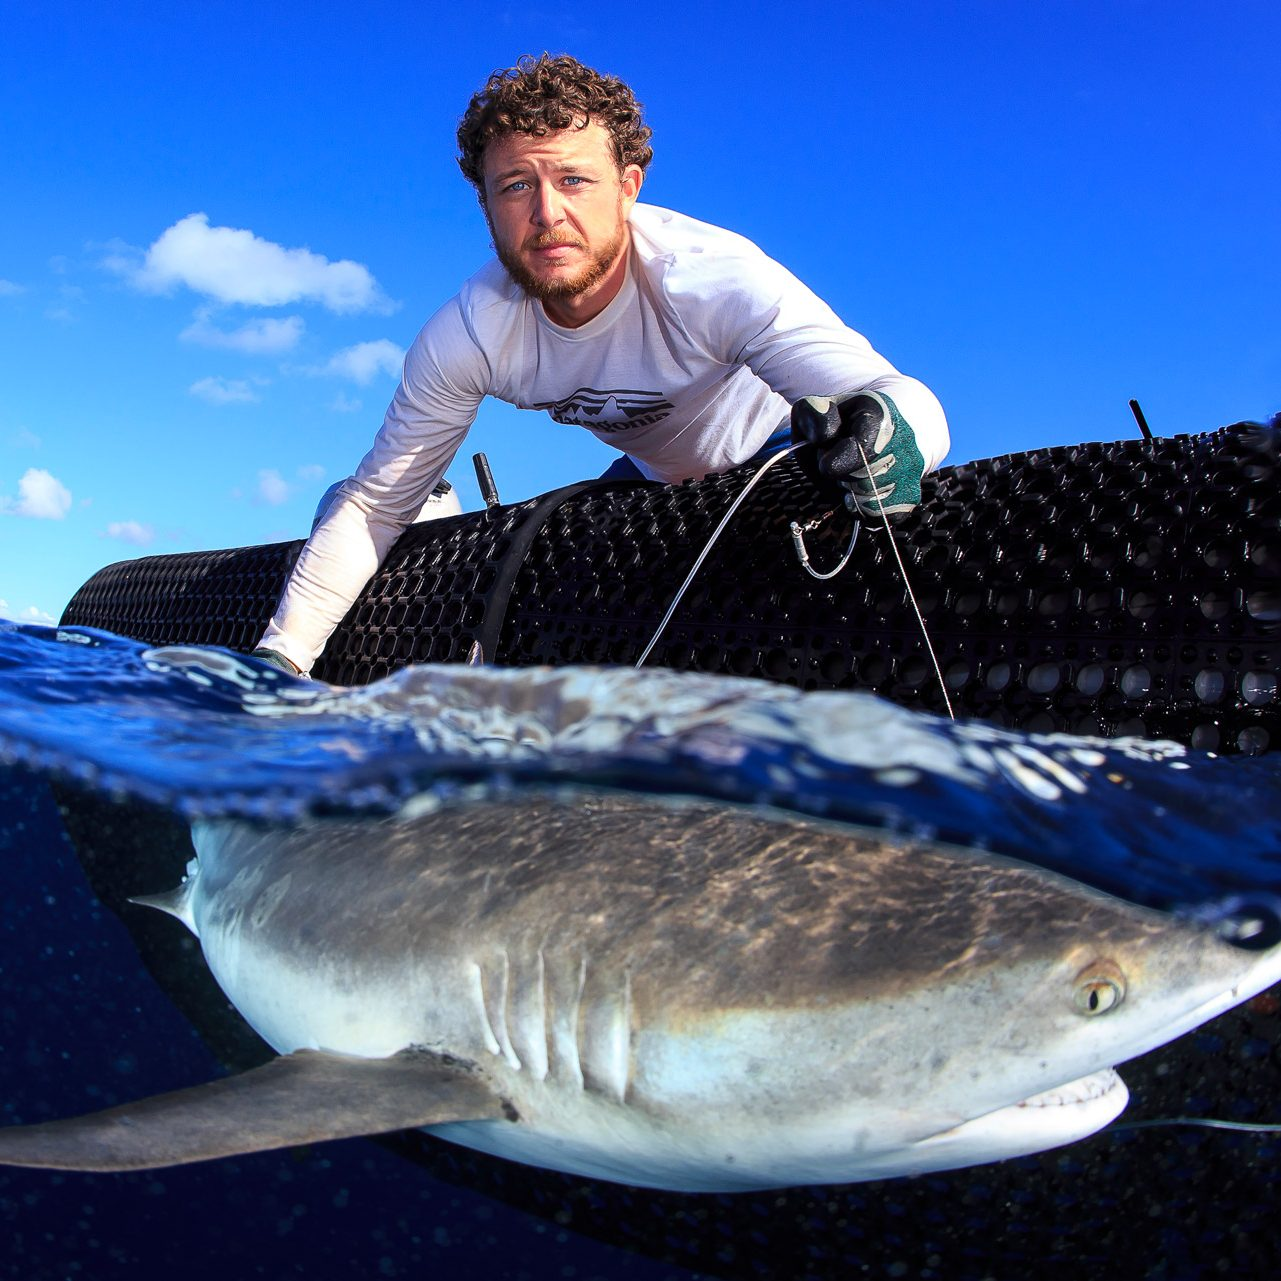 researcher on a small boat holding a shark underwater